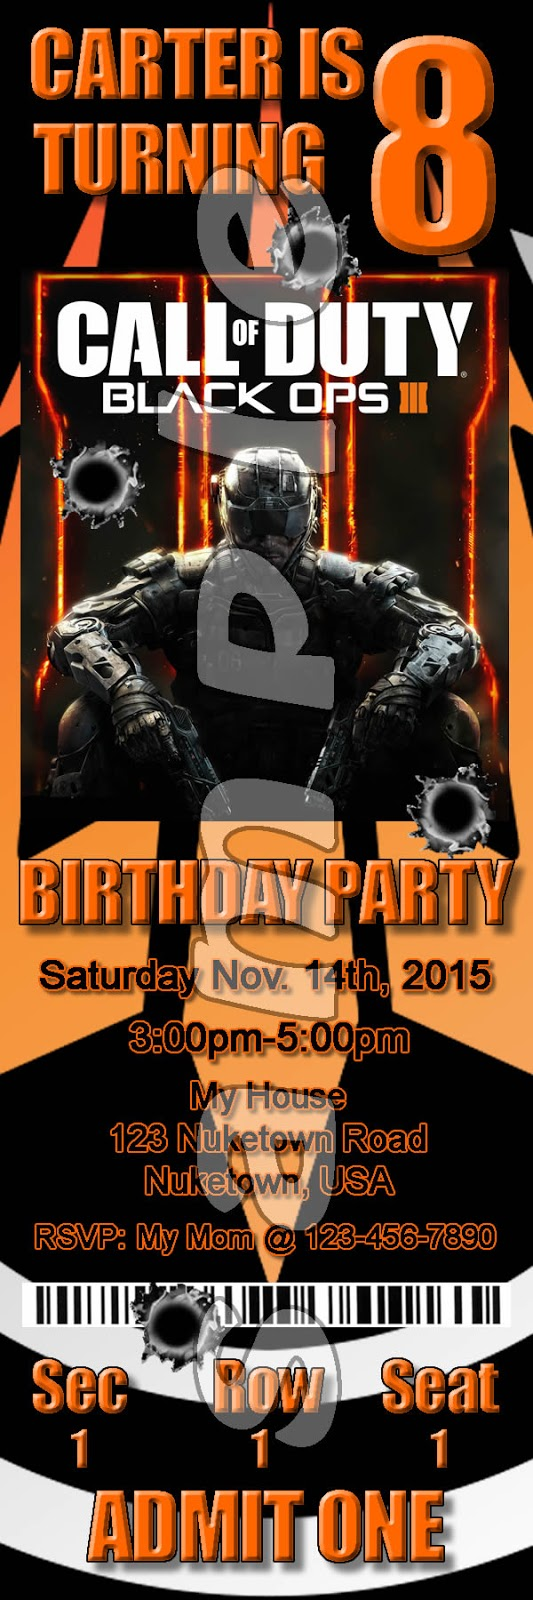 Reel party invitations call of duty black ops 3 birthday party click here to see the black ops 3 ticket invitations filmwisefo Image collections